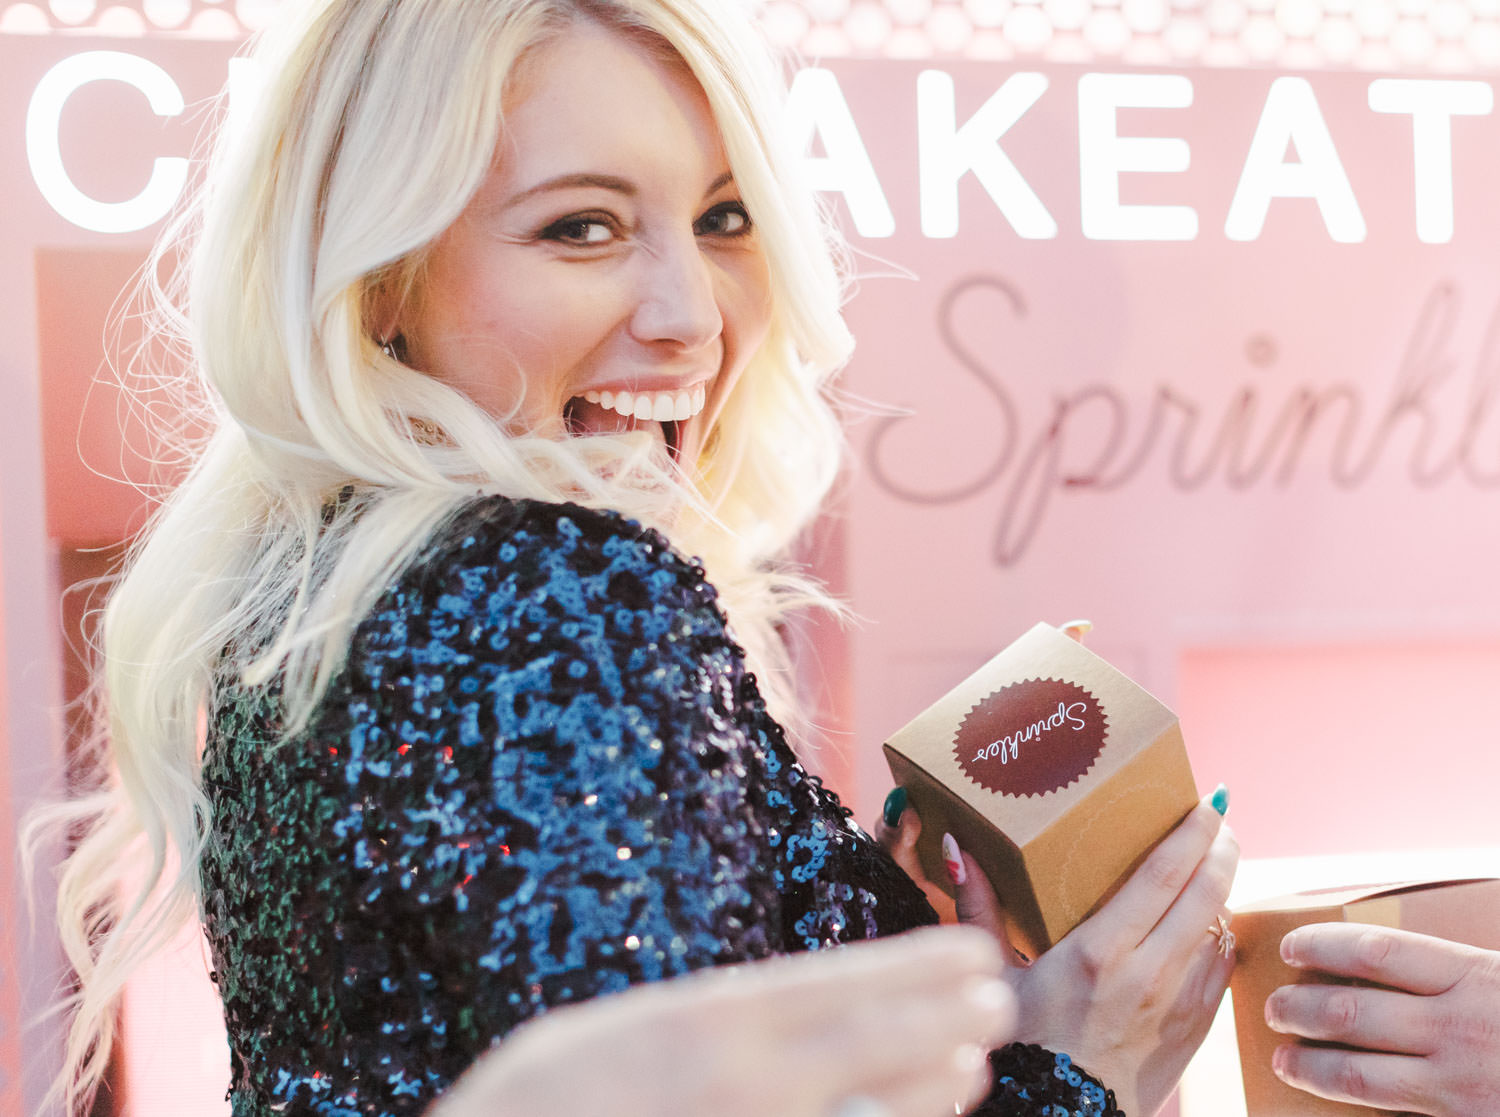 Bride getting cupcake at Sprinkles ATM wearing a black sequin dress, Beverly Hills Sprinkles Cupcake Engagement Photos by Cavin Elizabeth Photography